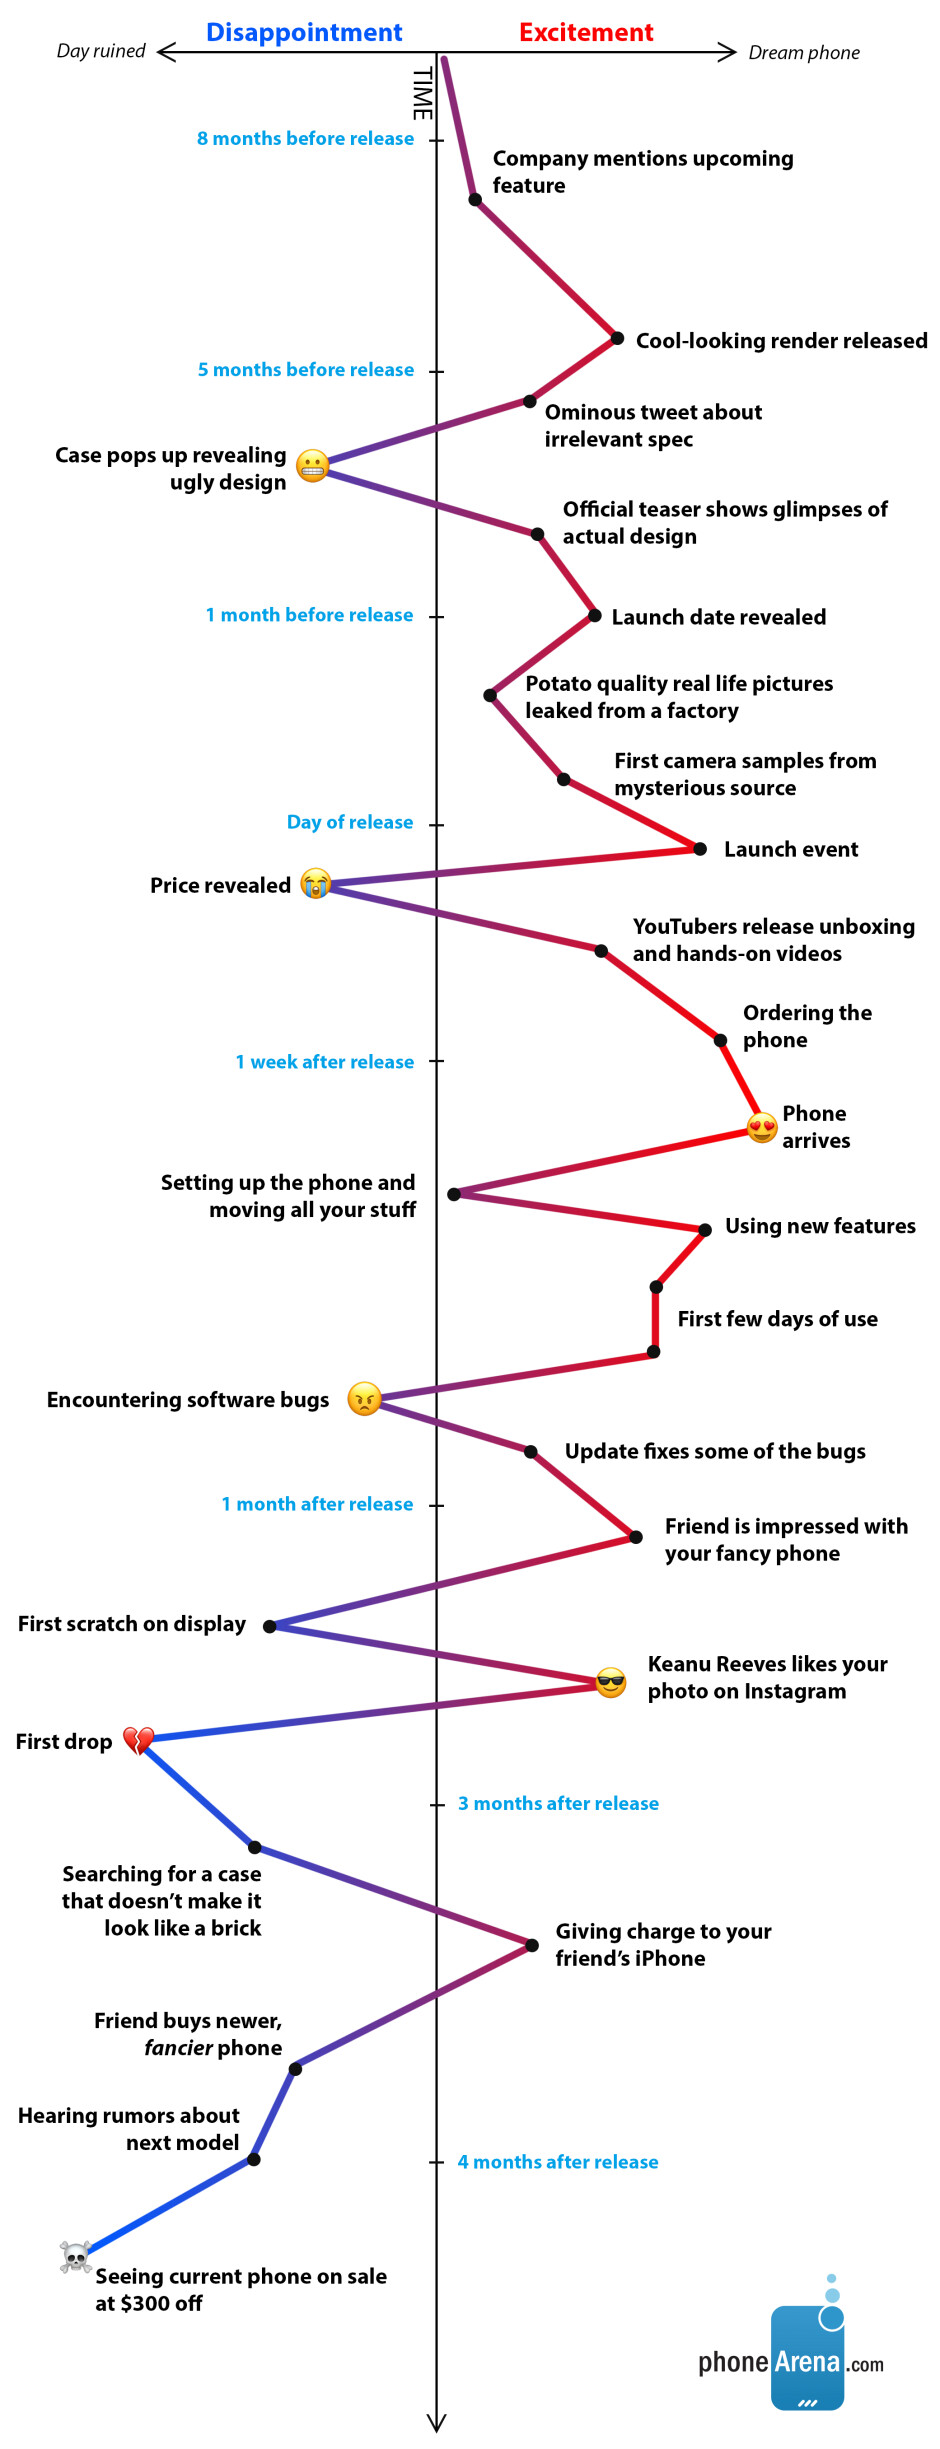 The joys and perils of looking for the perfect phone: an emotional graph